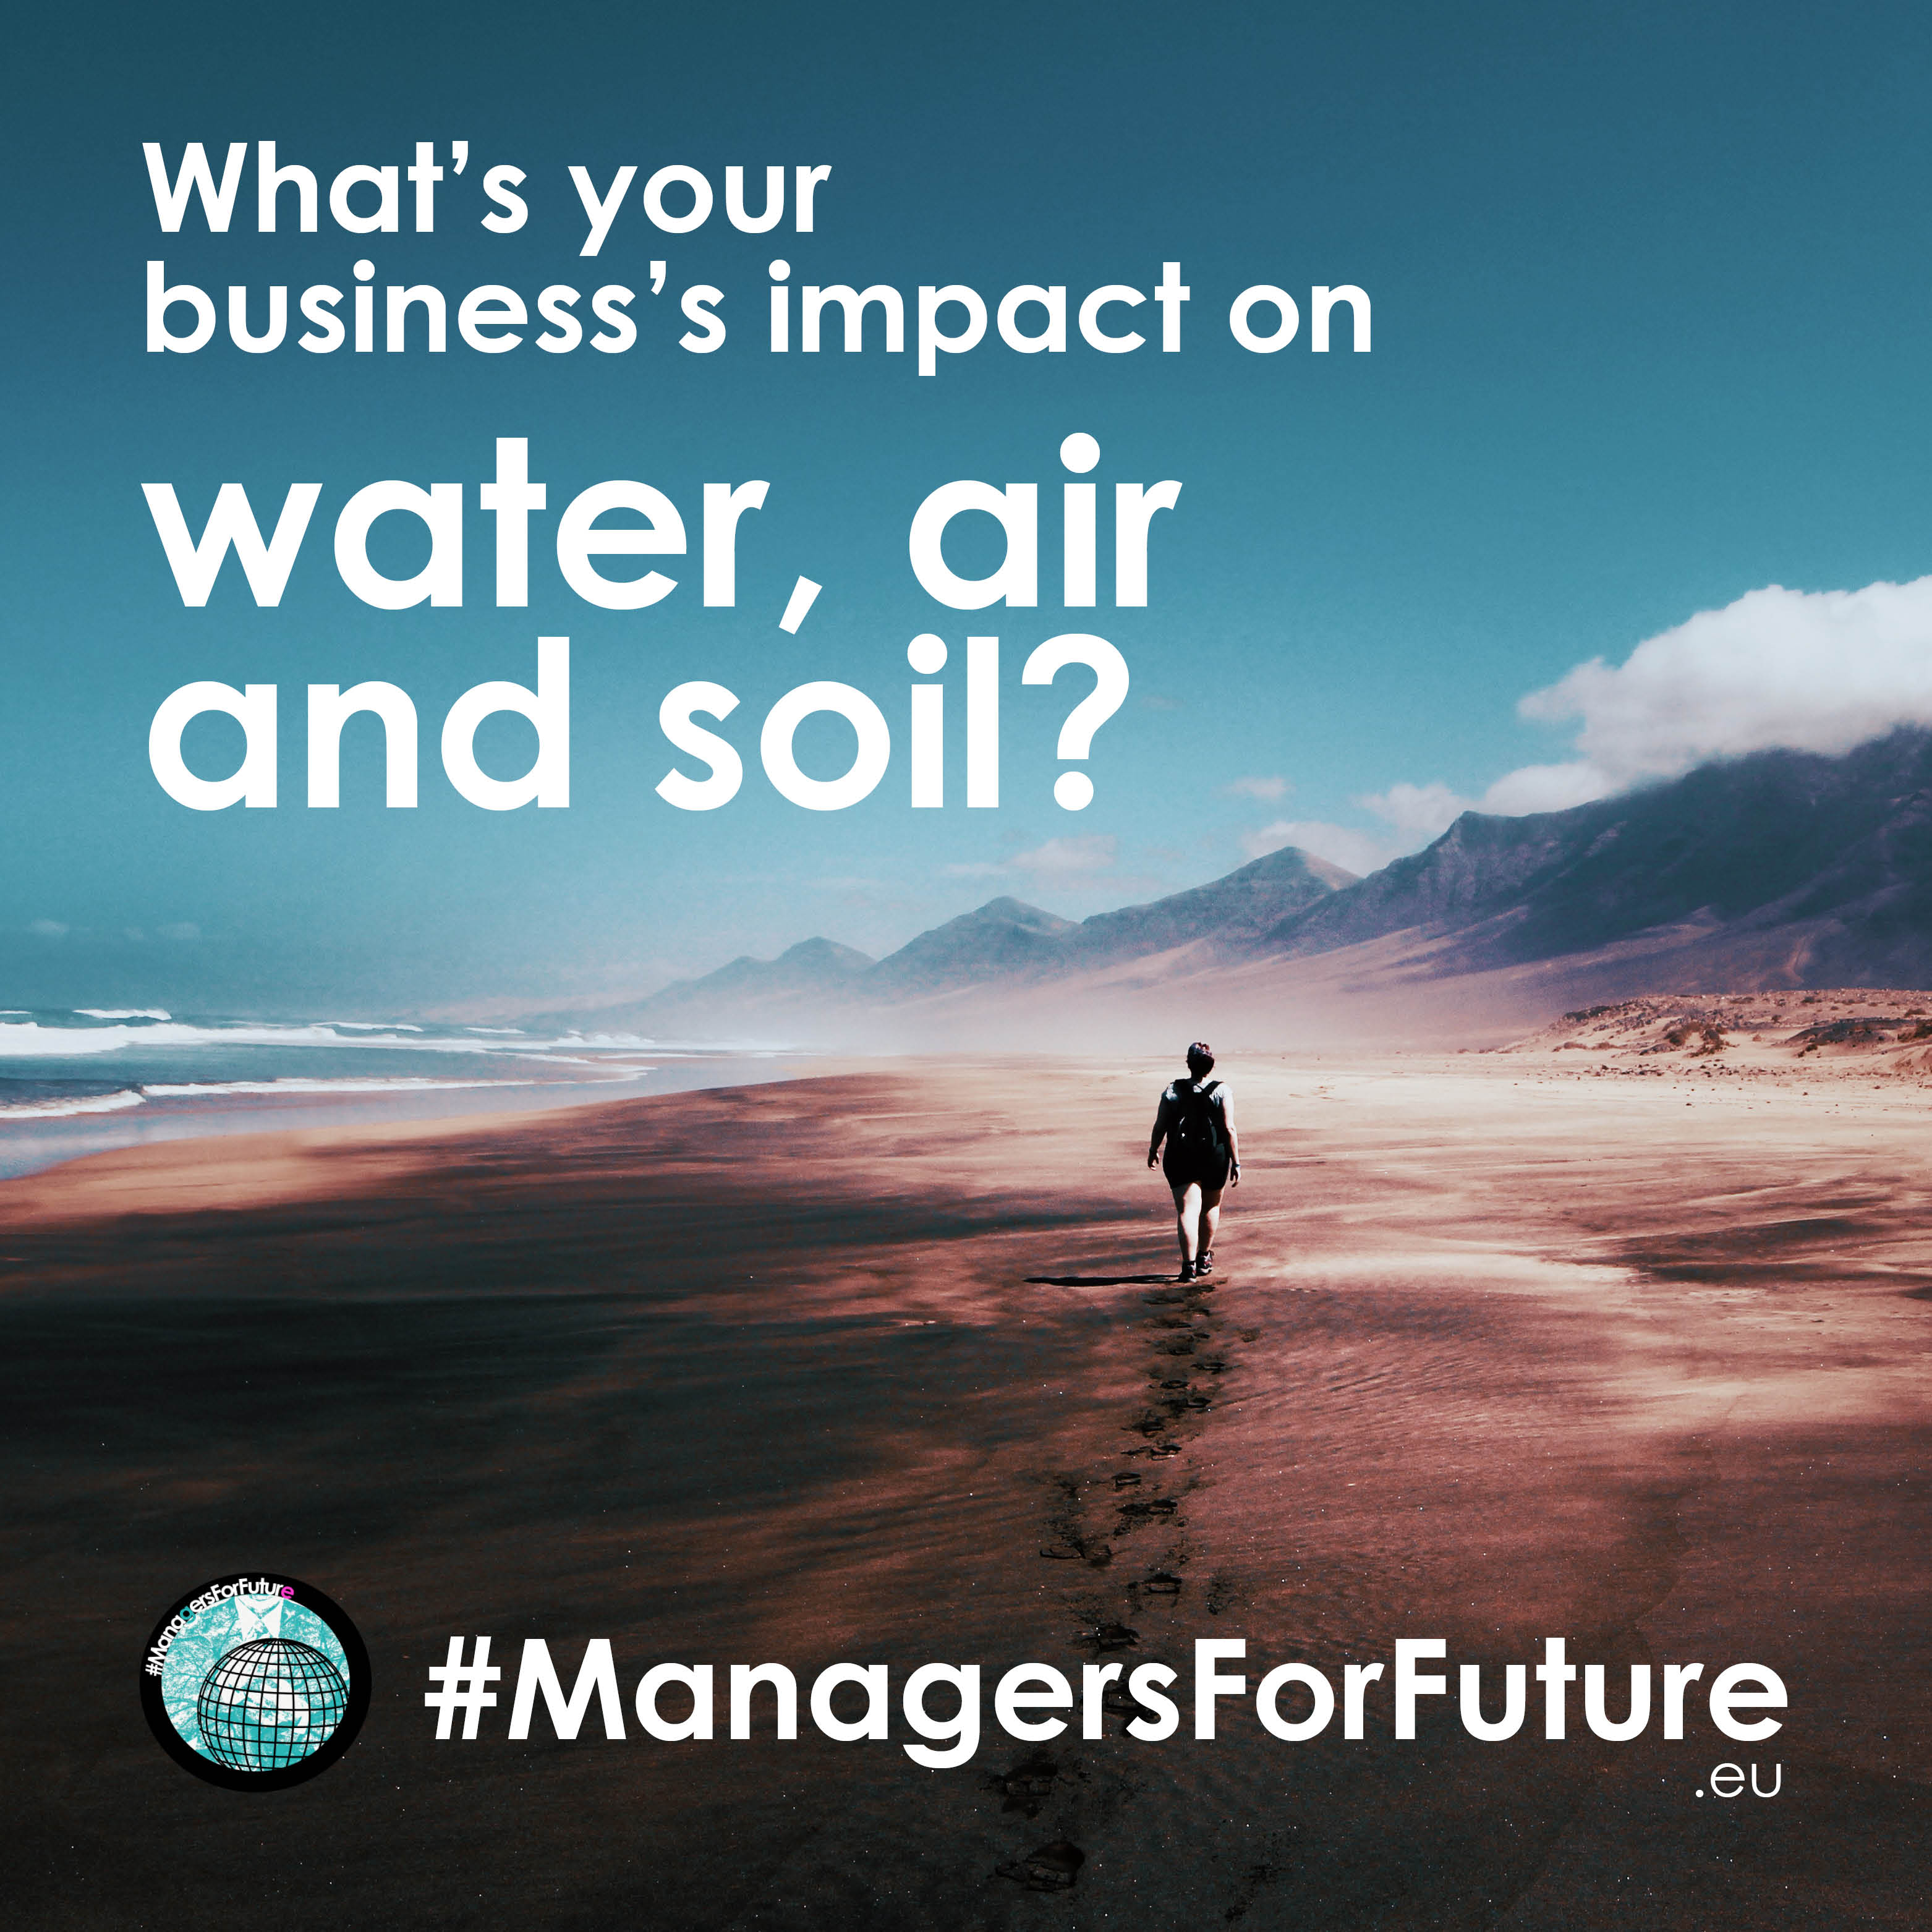 CEC European Managers: Launch of #ManagersForFuture Campaign